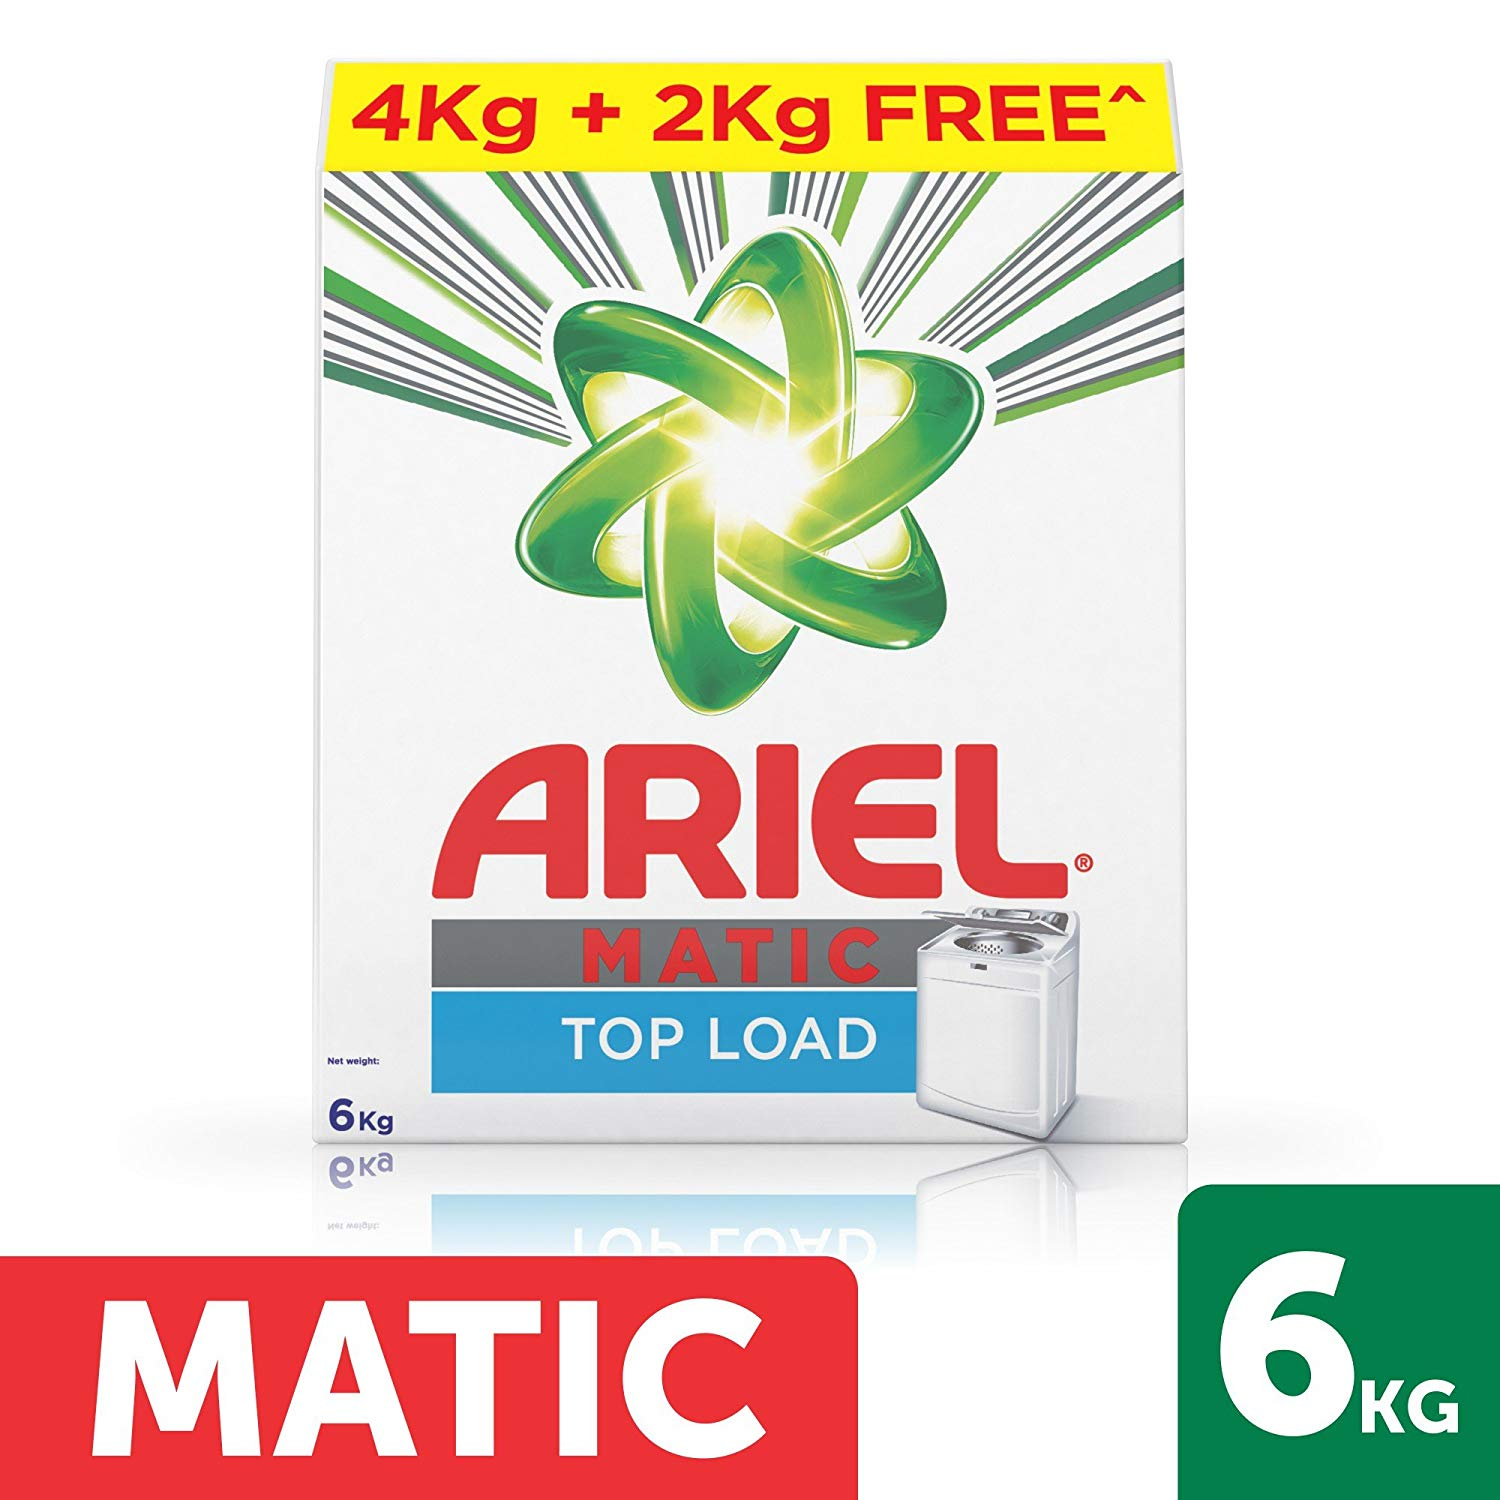 ARIEL MATIC TOP LOAD (6KG) CONTAINER 4 KG